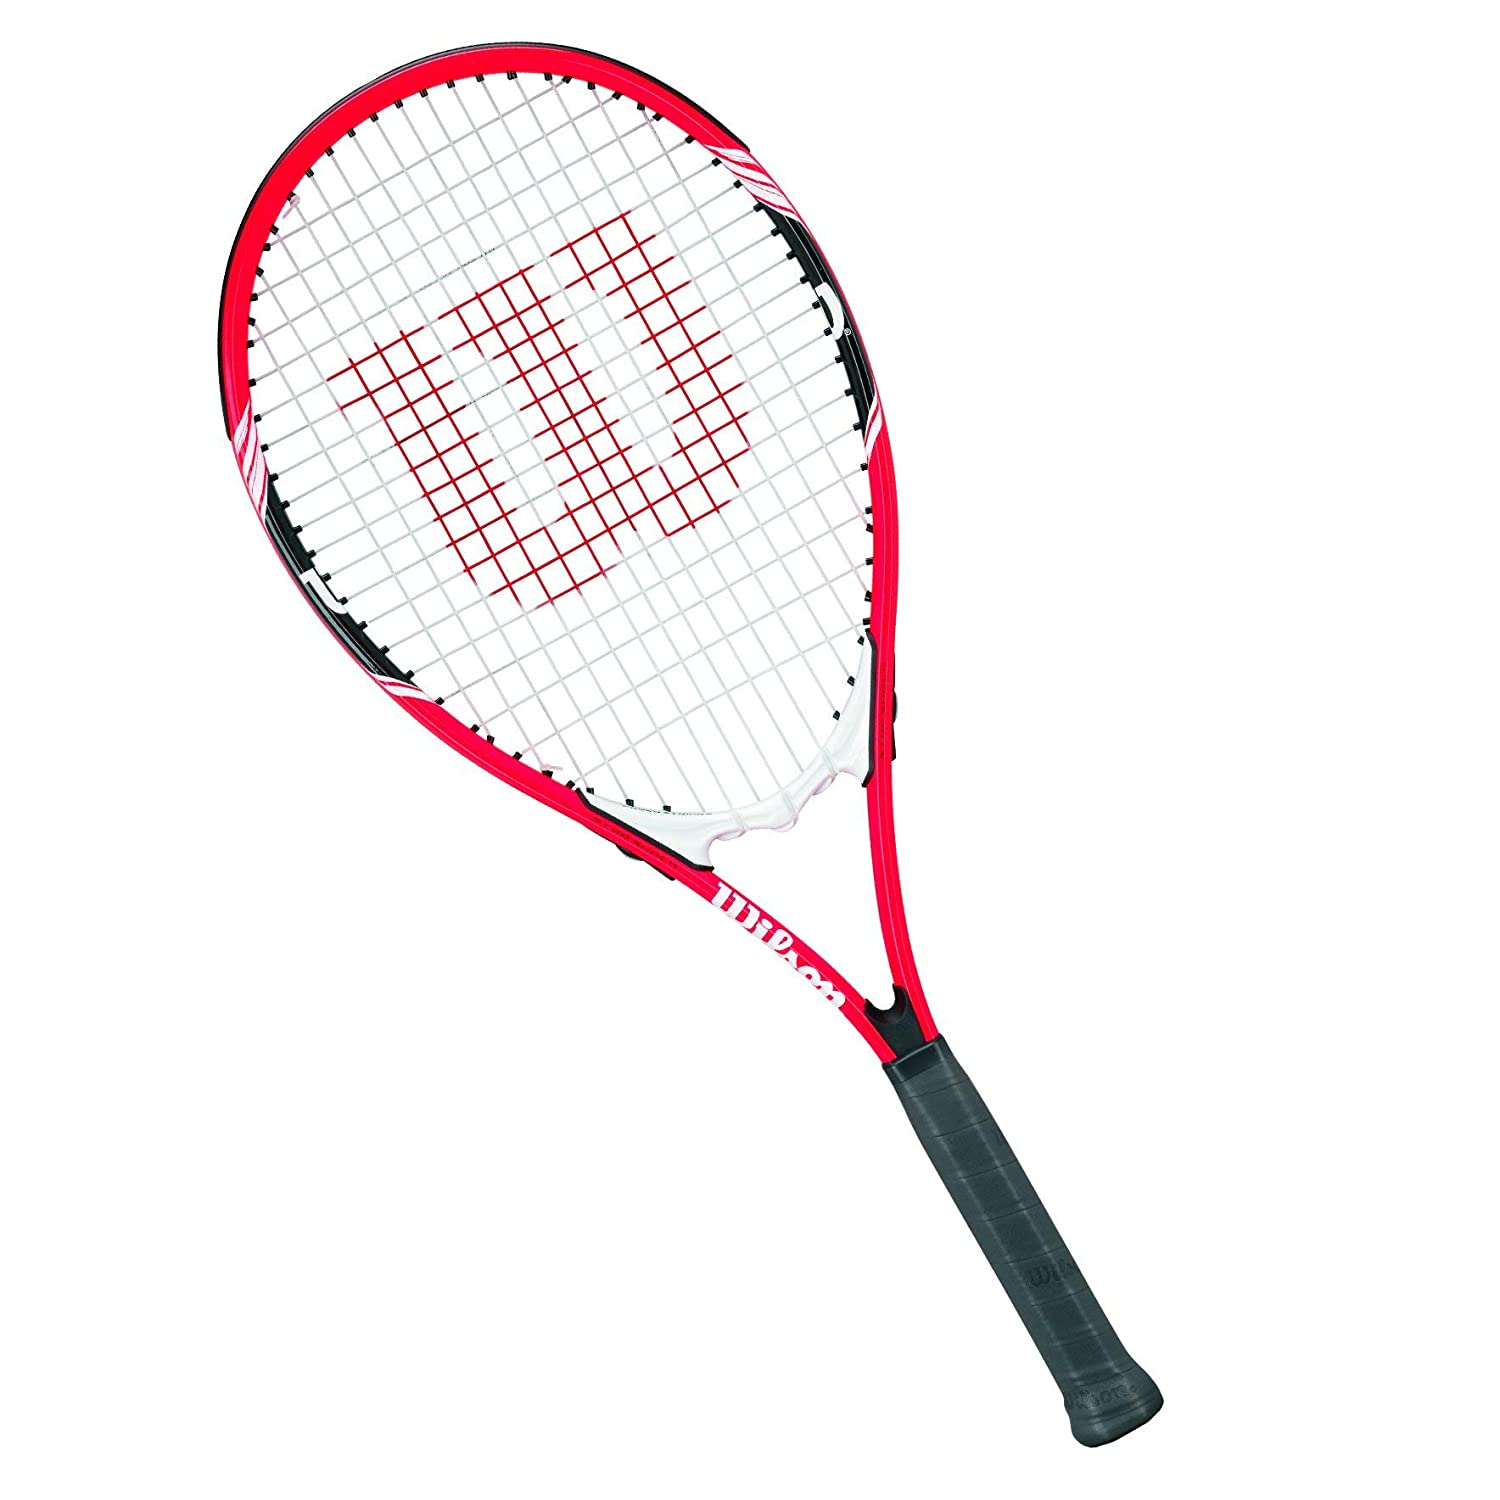 Wilson Federer Adult Strung Tennis Racket Wilson Sporting Goods WRT32470U4-Parent